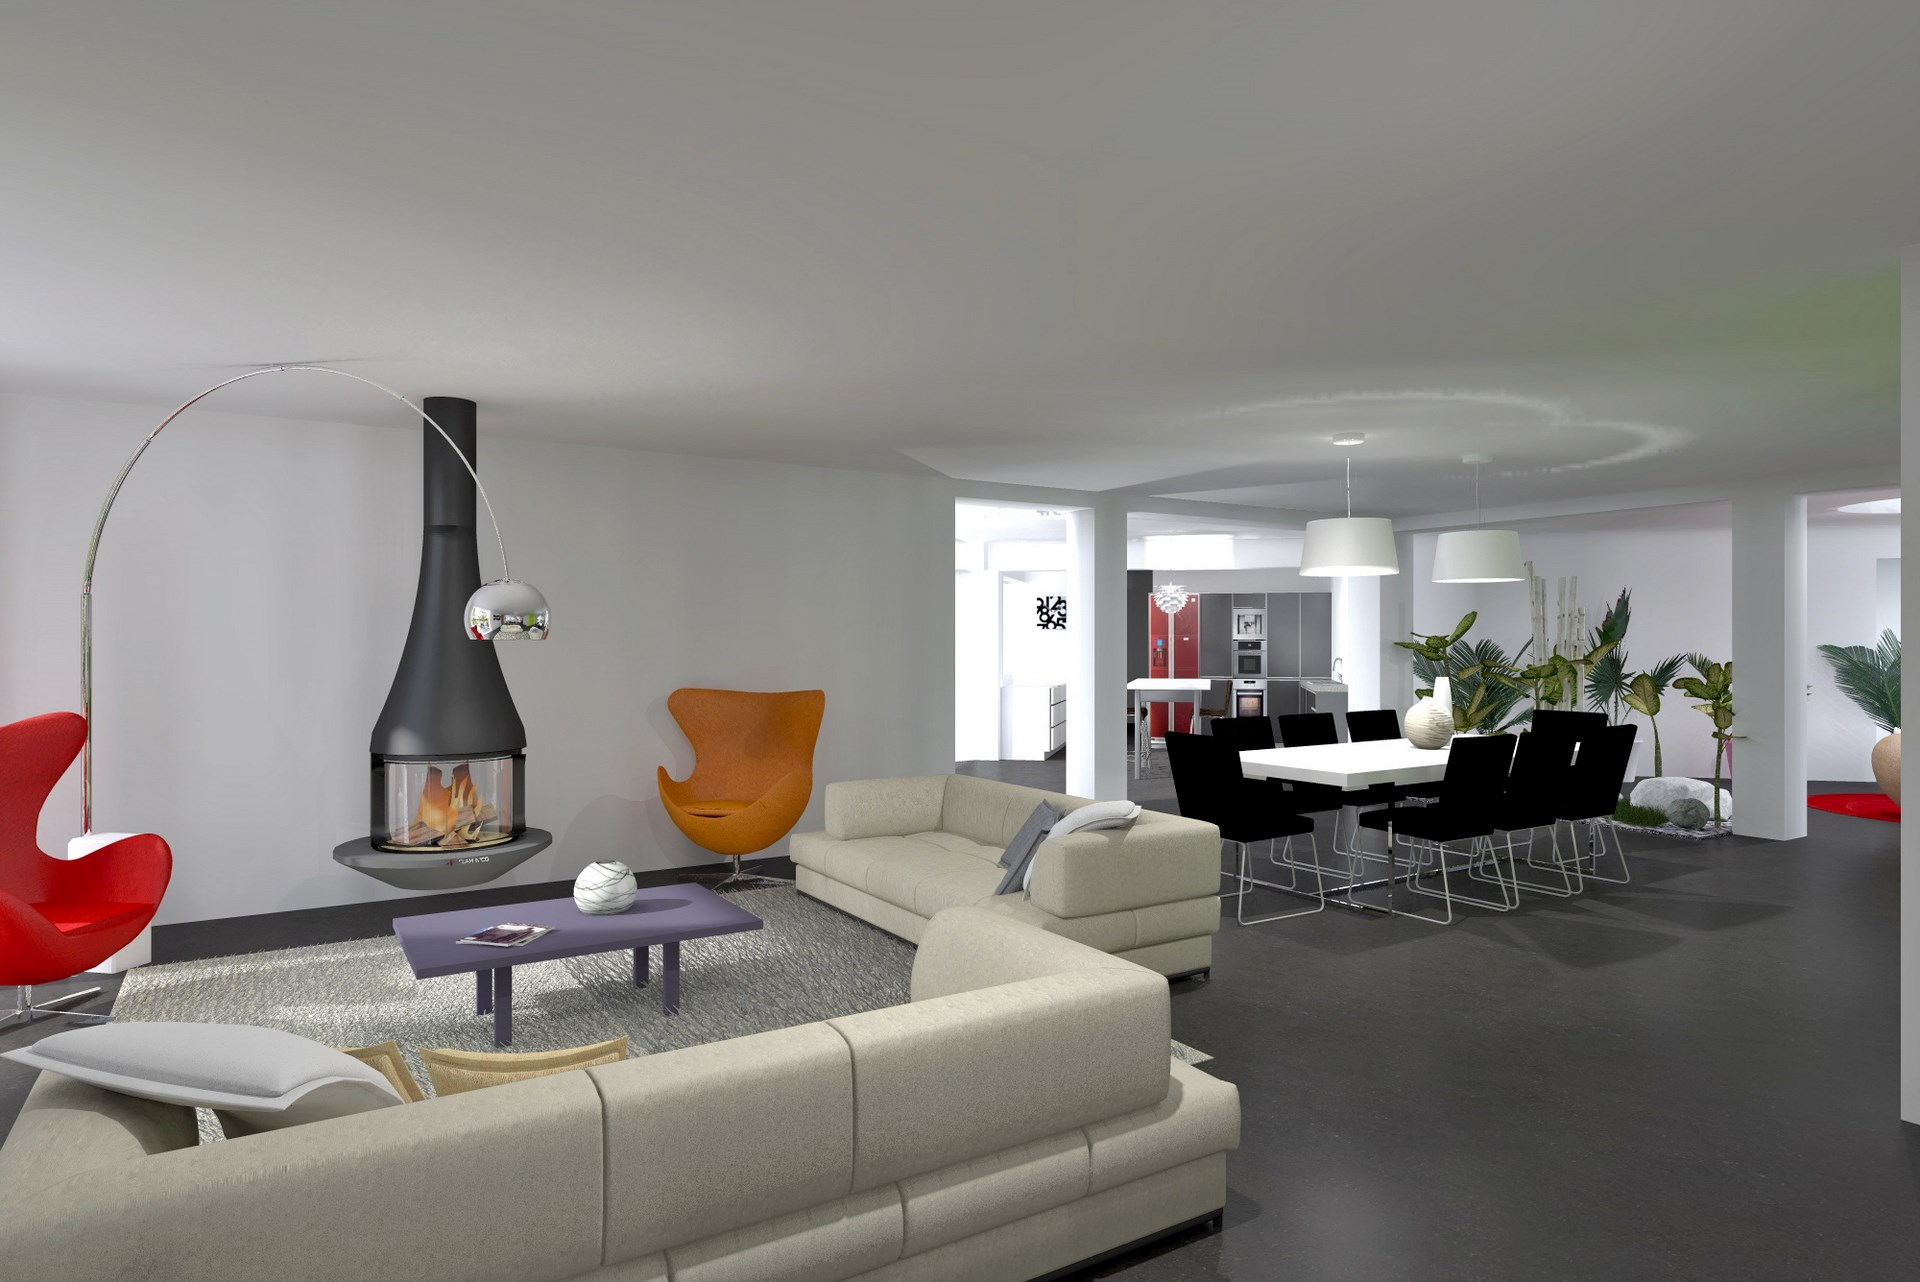 Extension contemporaine vignoble champenois architecte Amenagement salon cuisine ouverte 35m2